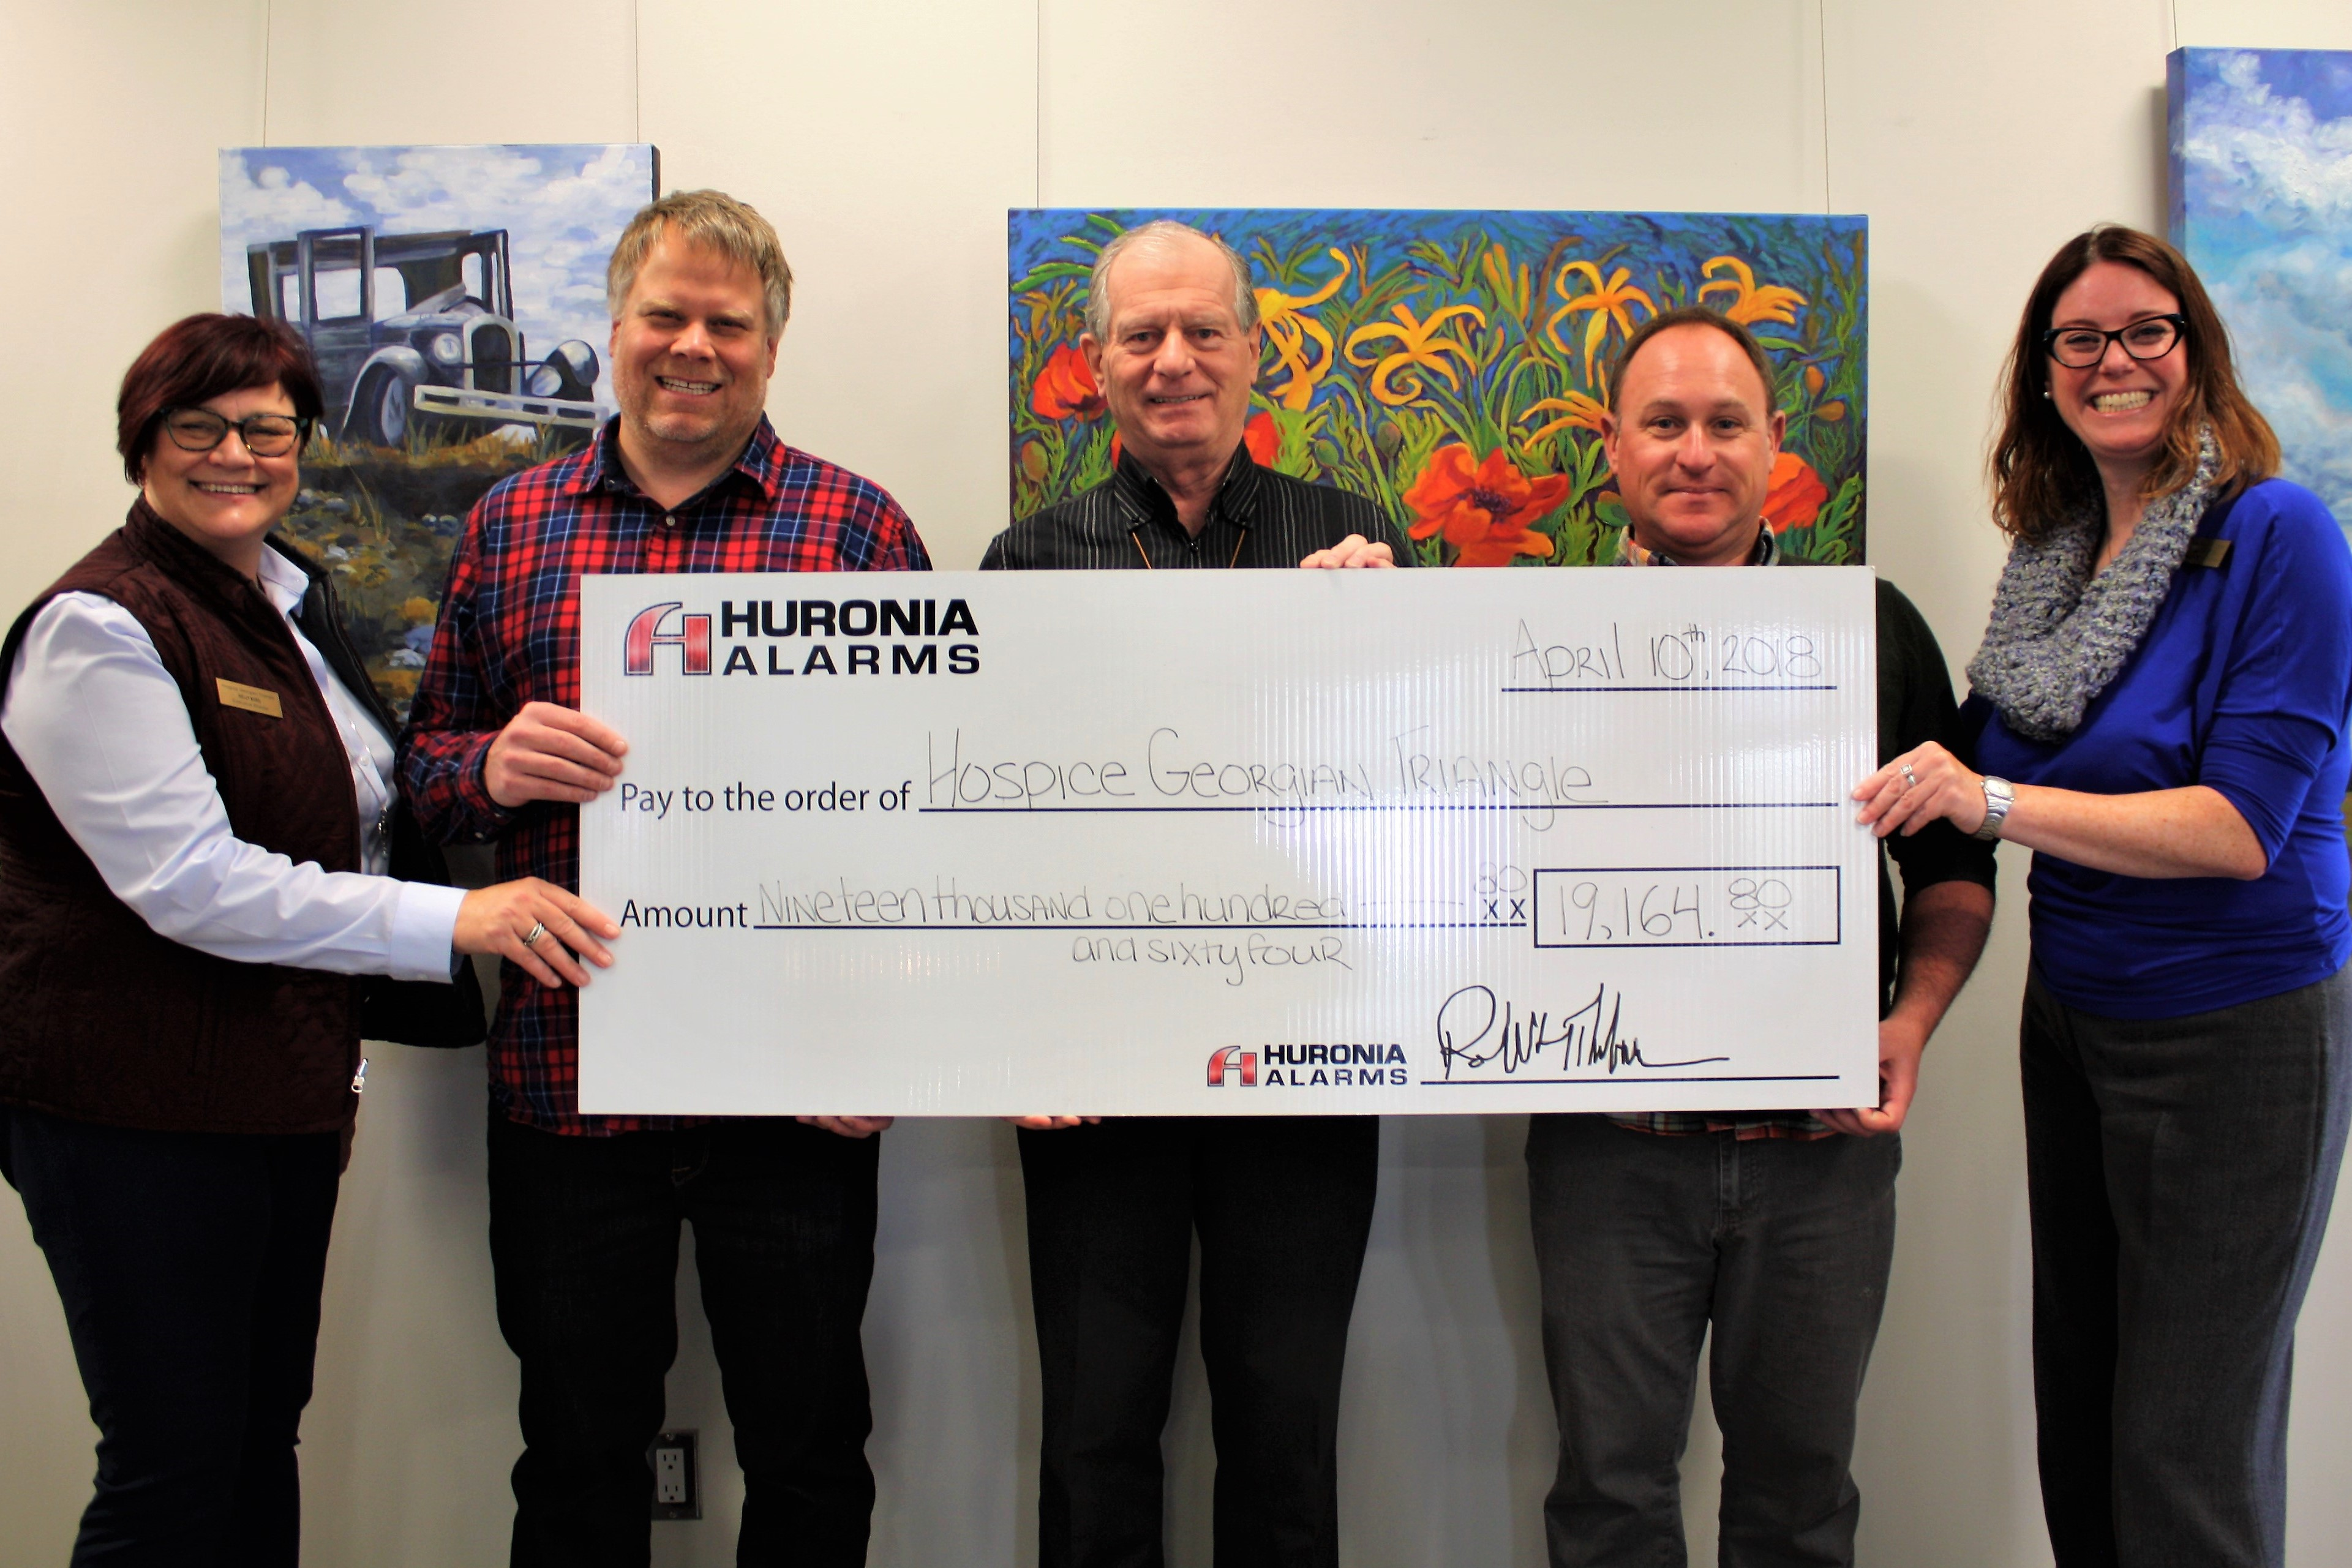 Huronia Alarm & Fire Security Inc. makes donation-in-kind to Hospice Georgian Triangle, Campbell House